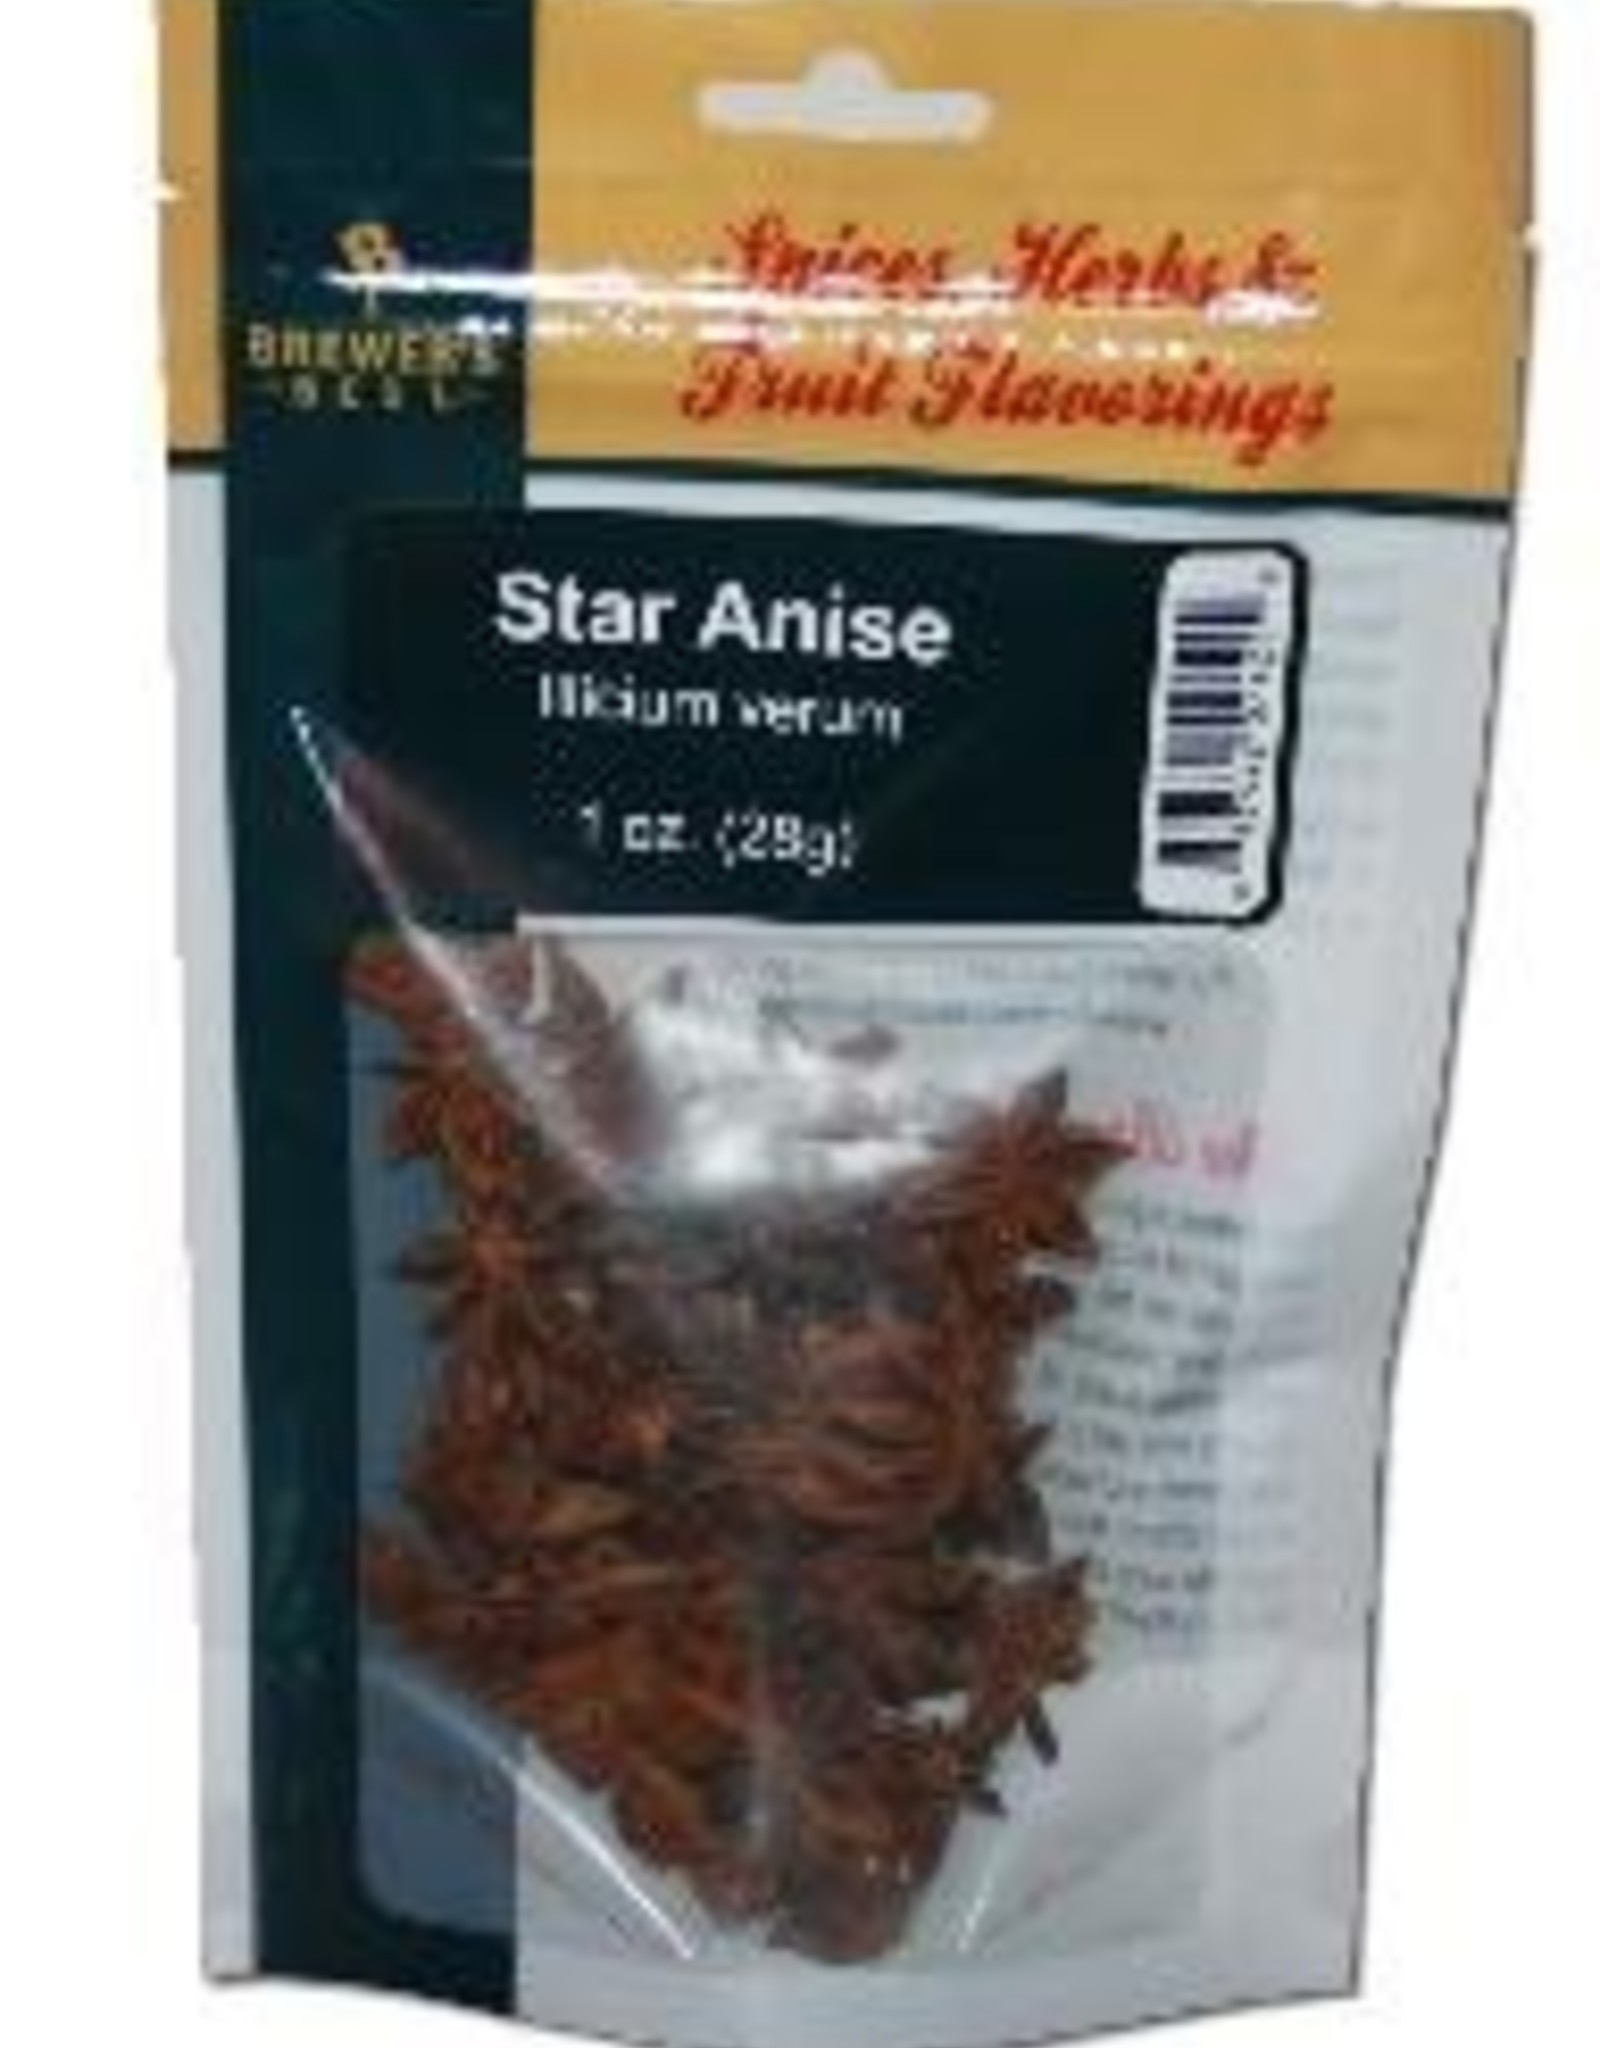 BREWERS BEST Illicium verum In times past, fresh star anise was chewed after each meal to aid digestion and to sweeten the breath. Used in specialty Belgian and holiday style beers, star anise has a flavor similar to licorice, yet is dramatically different when tasted